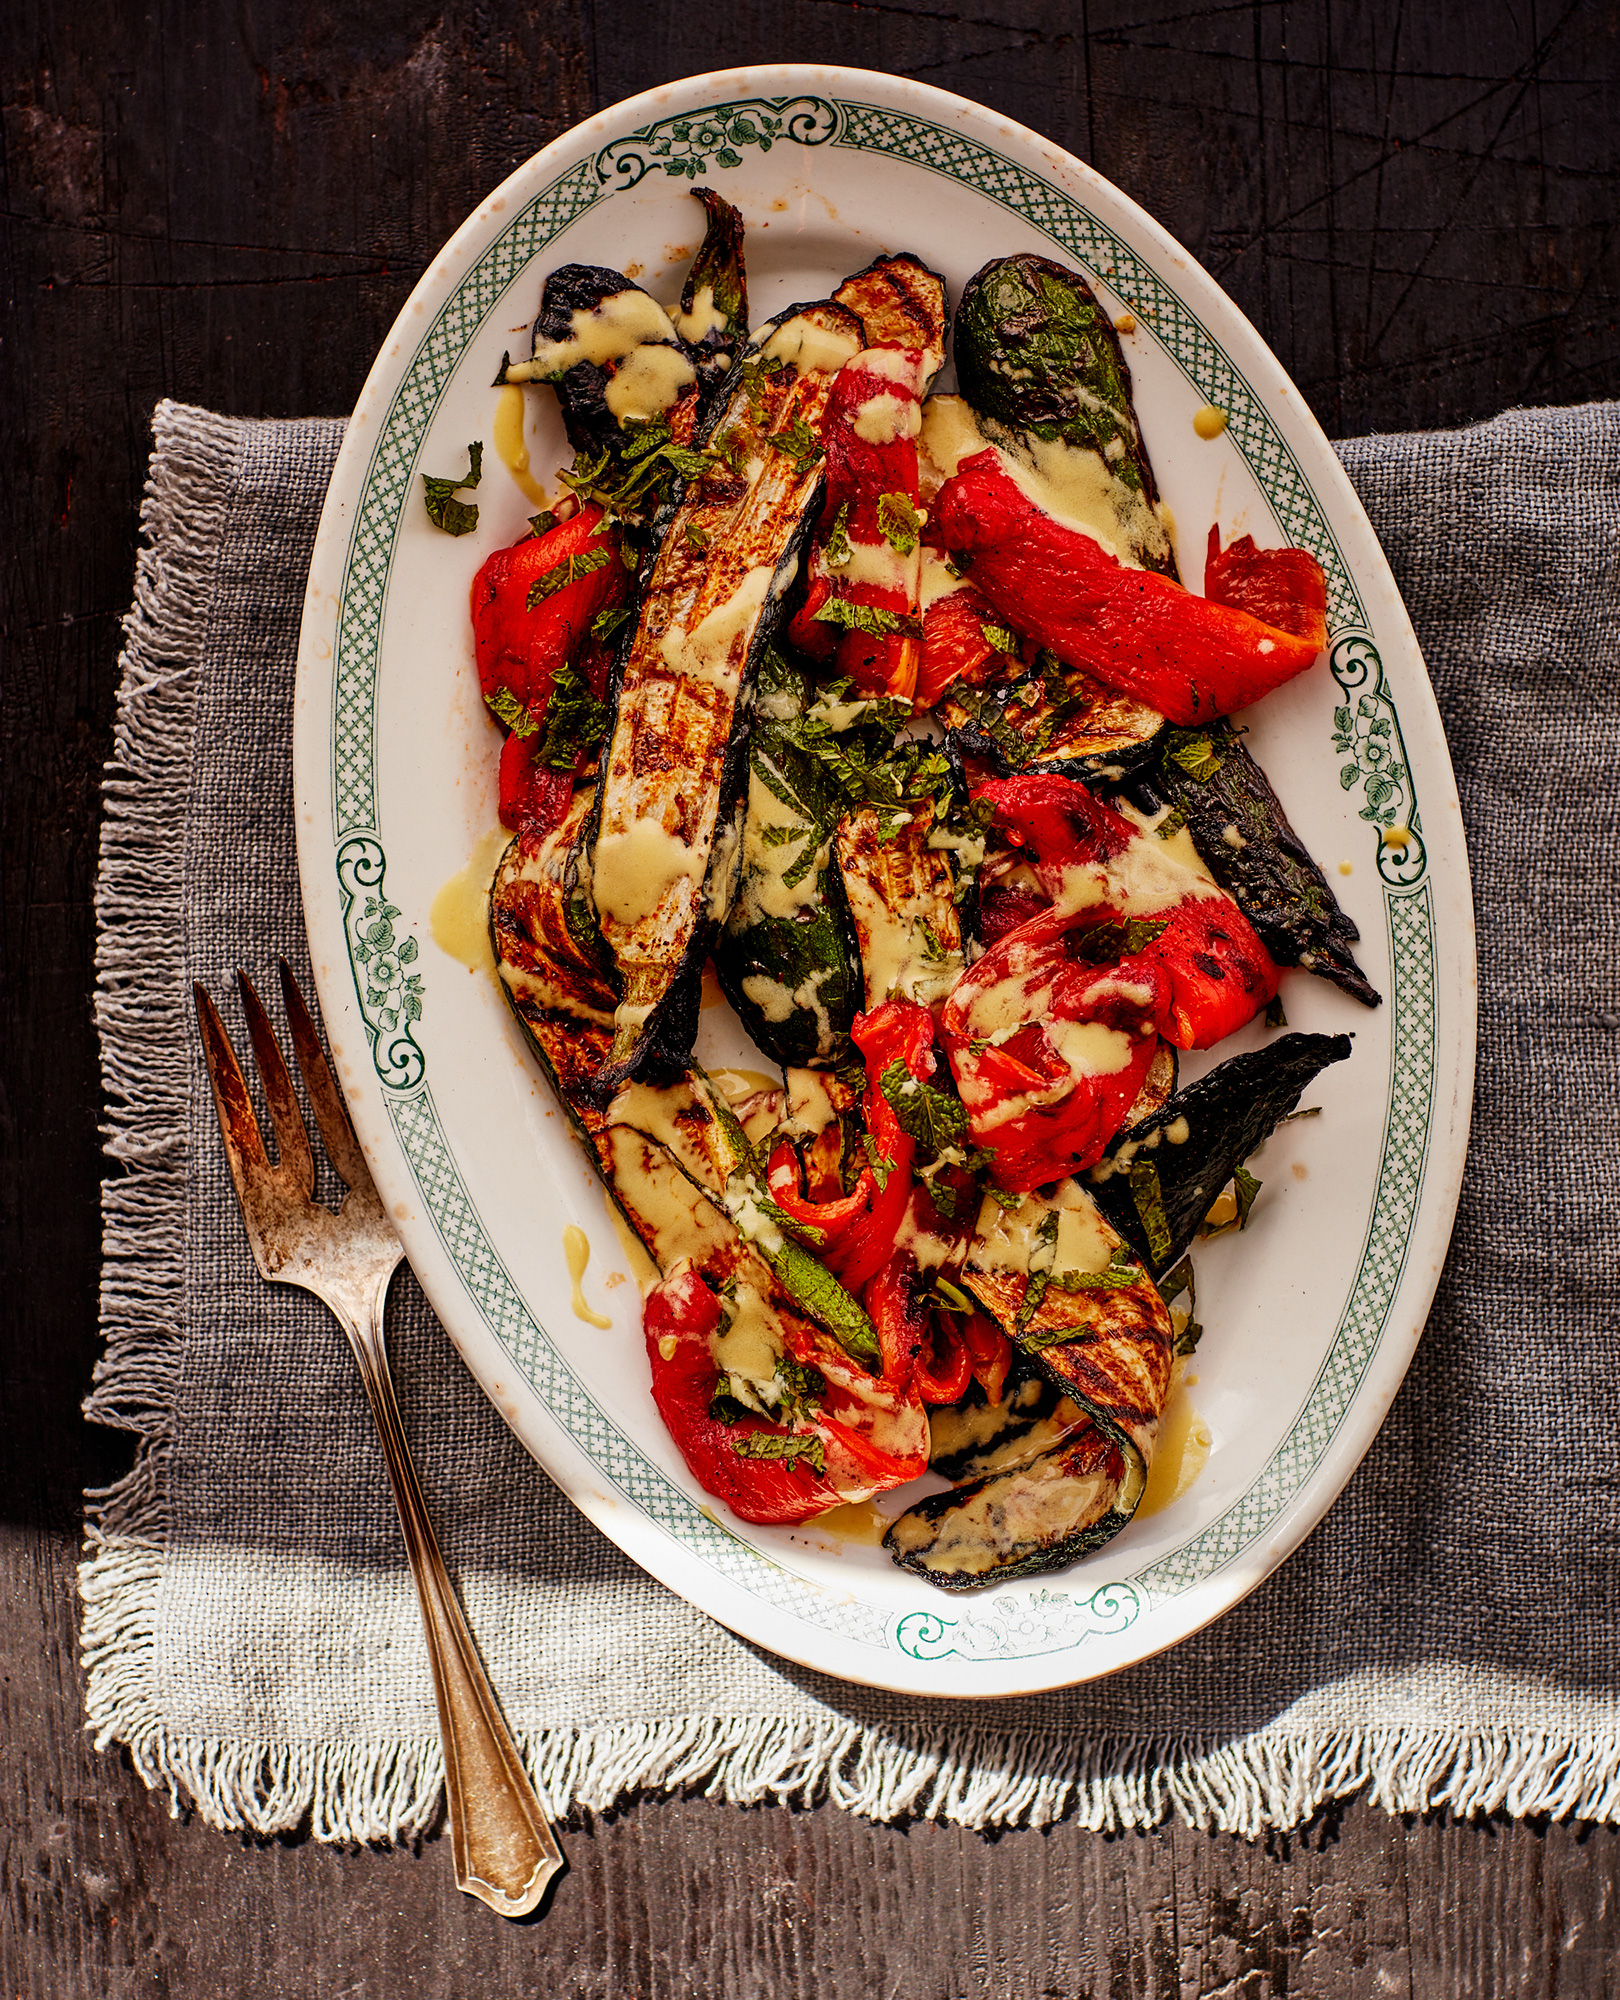 12_Grilled_Zuchini_and_Pepper_Salad_Mint_Vinaigrette_J_Miller_0274